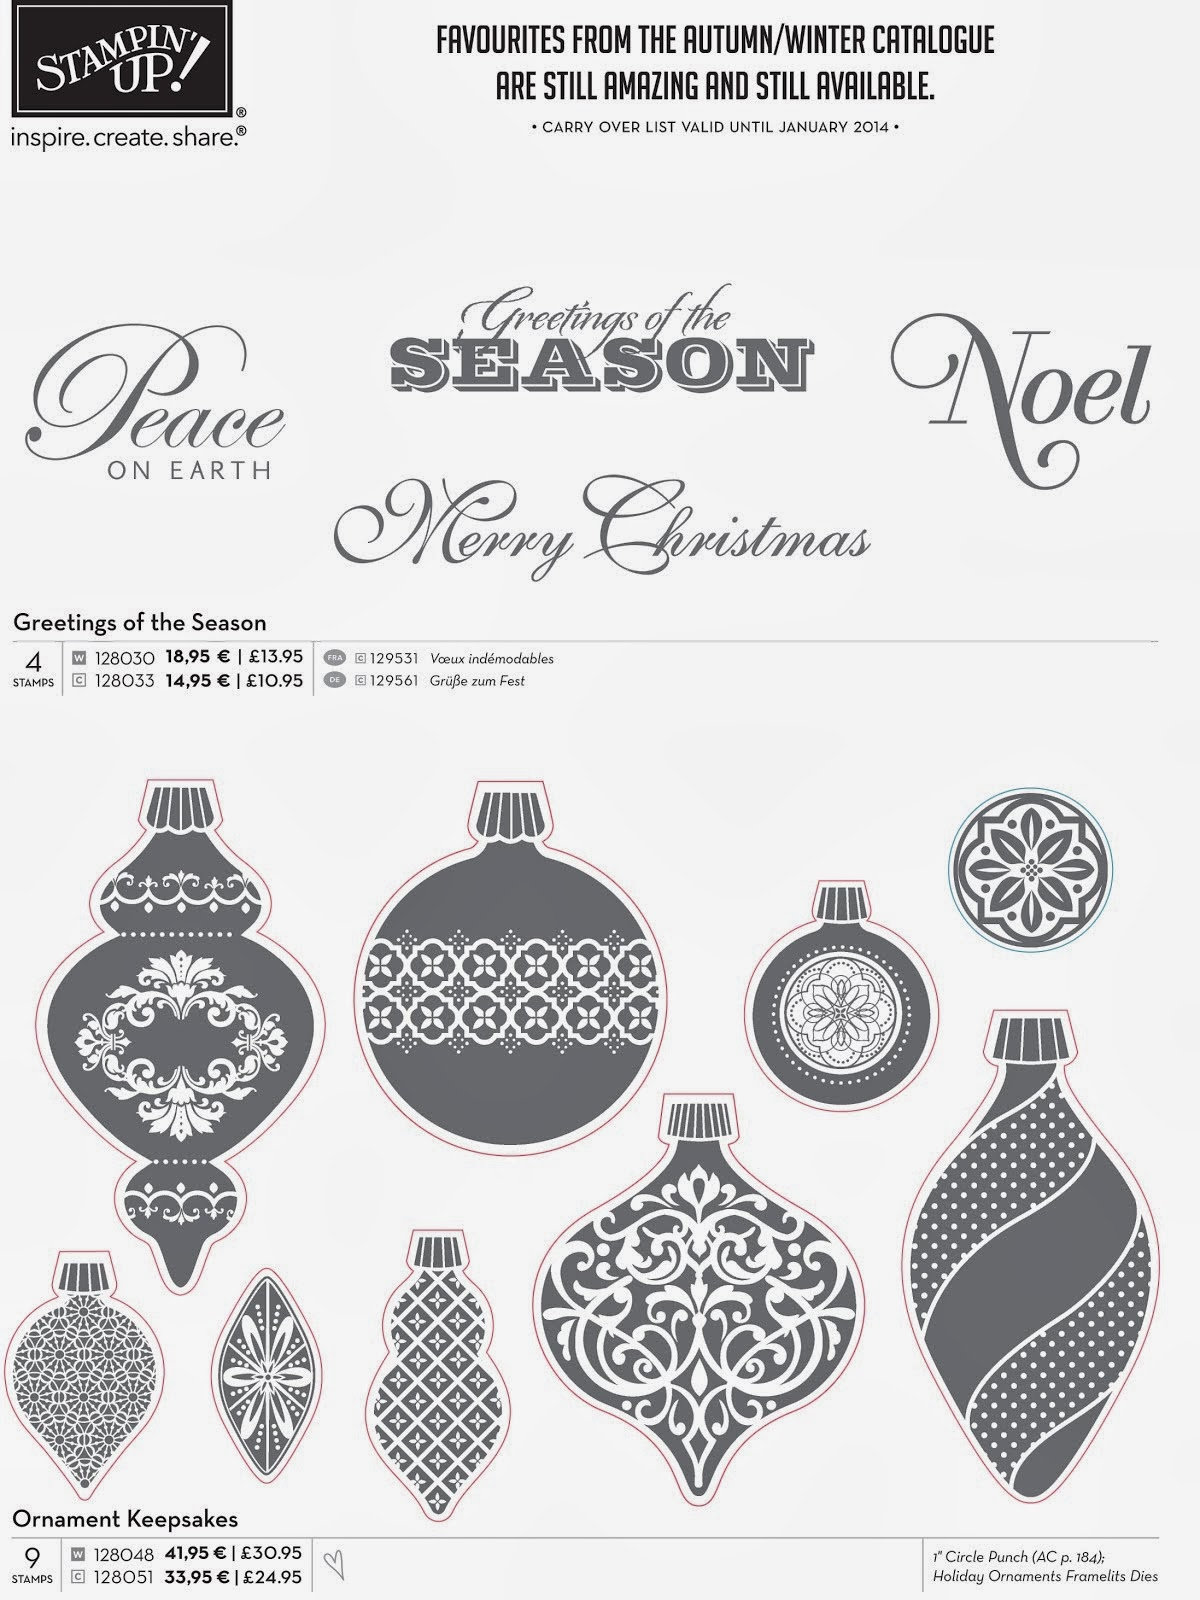 Greetings of The Season en Ornament Keepsakes